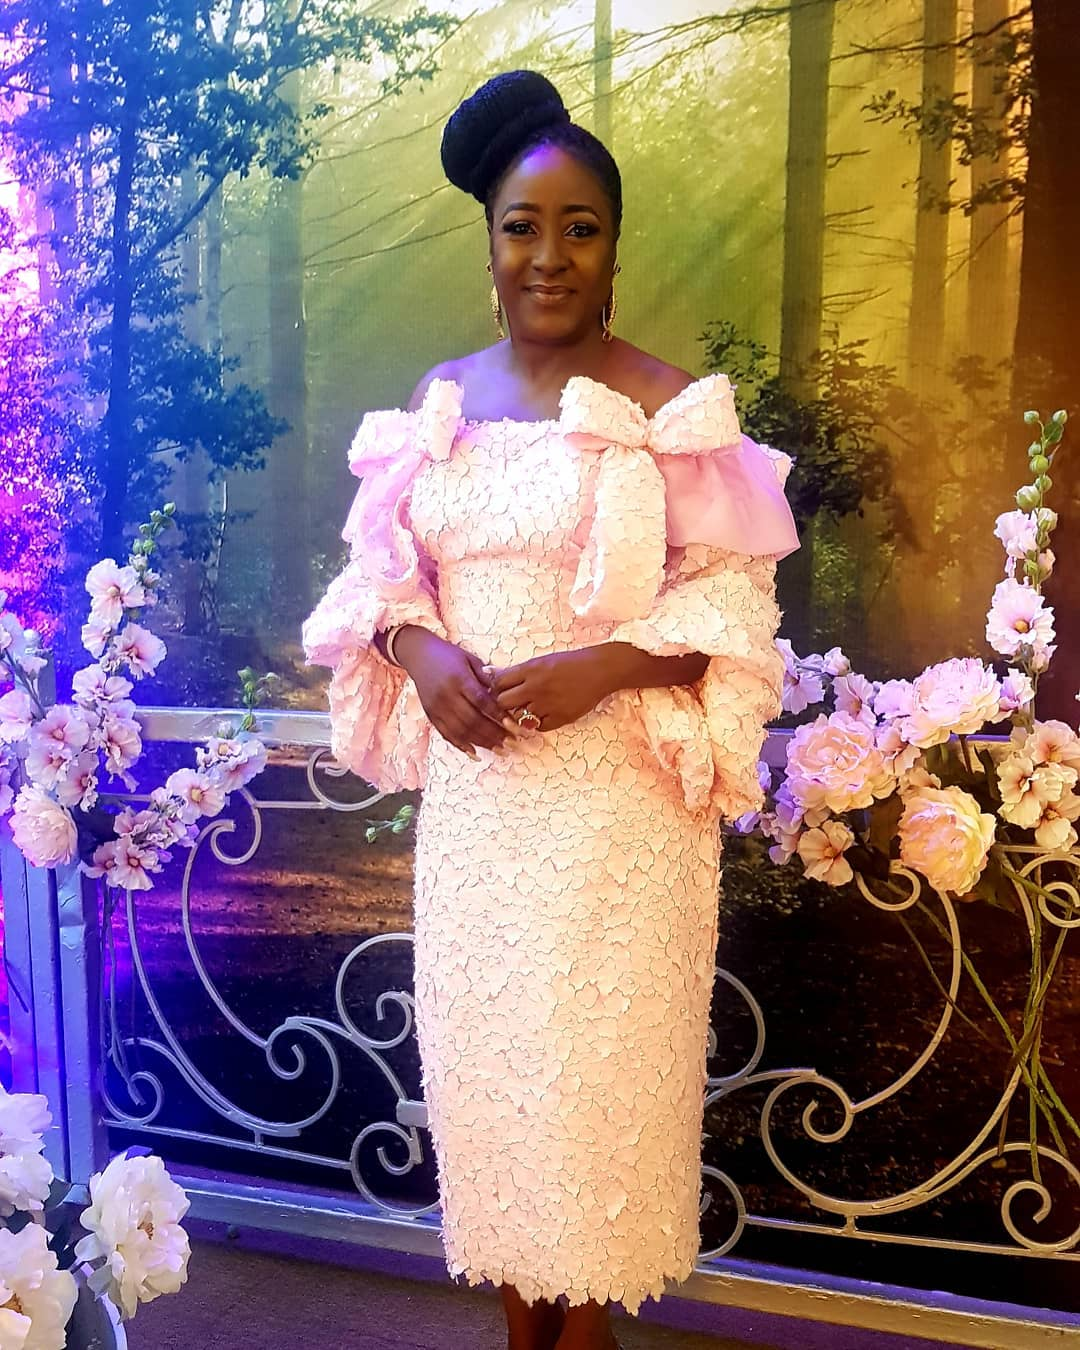 Temidayo-Ted-Abudu's wedding